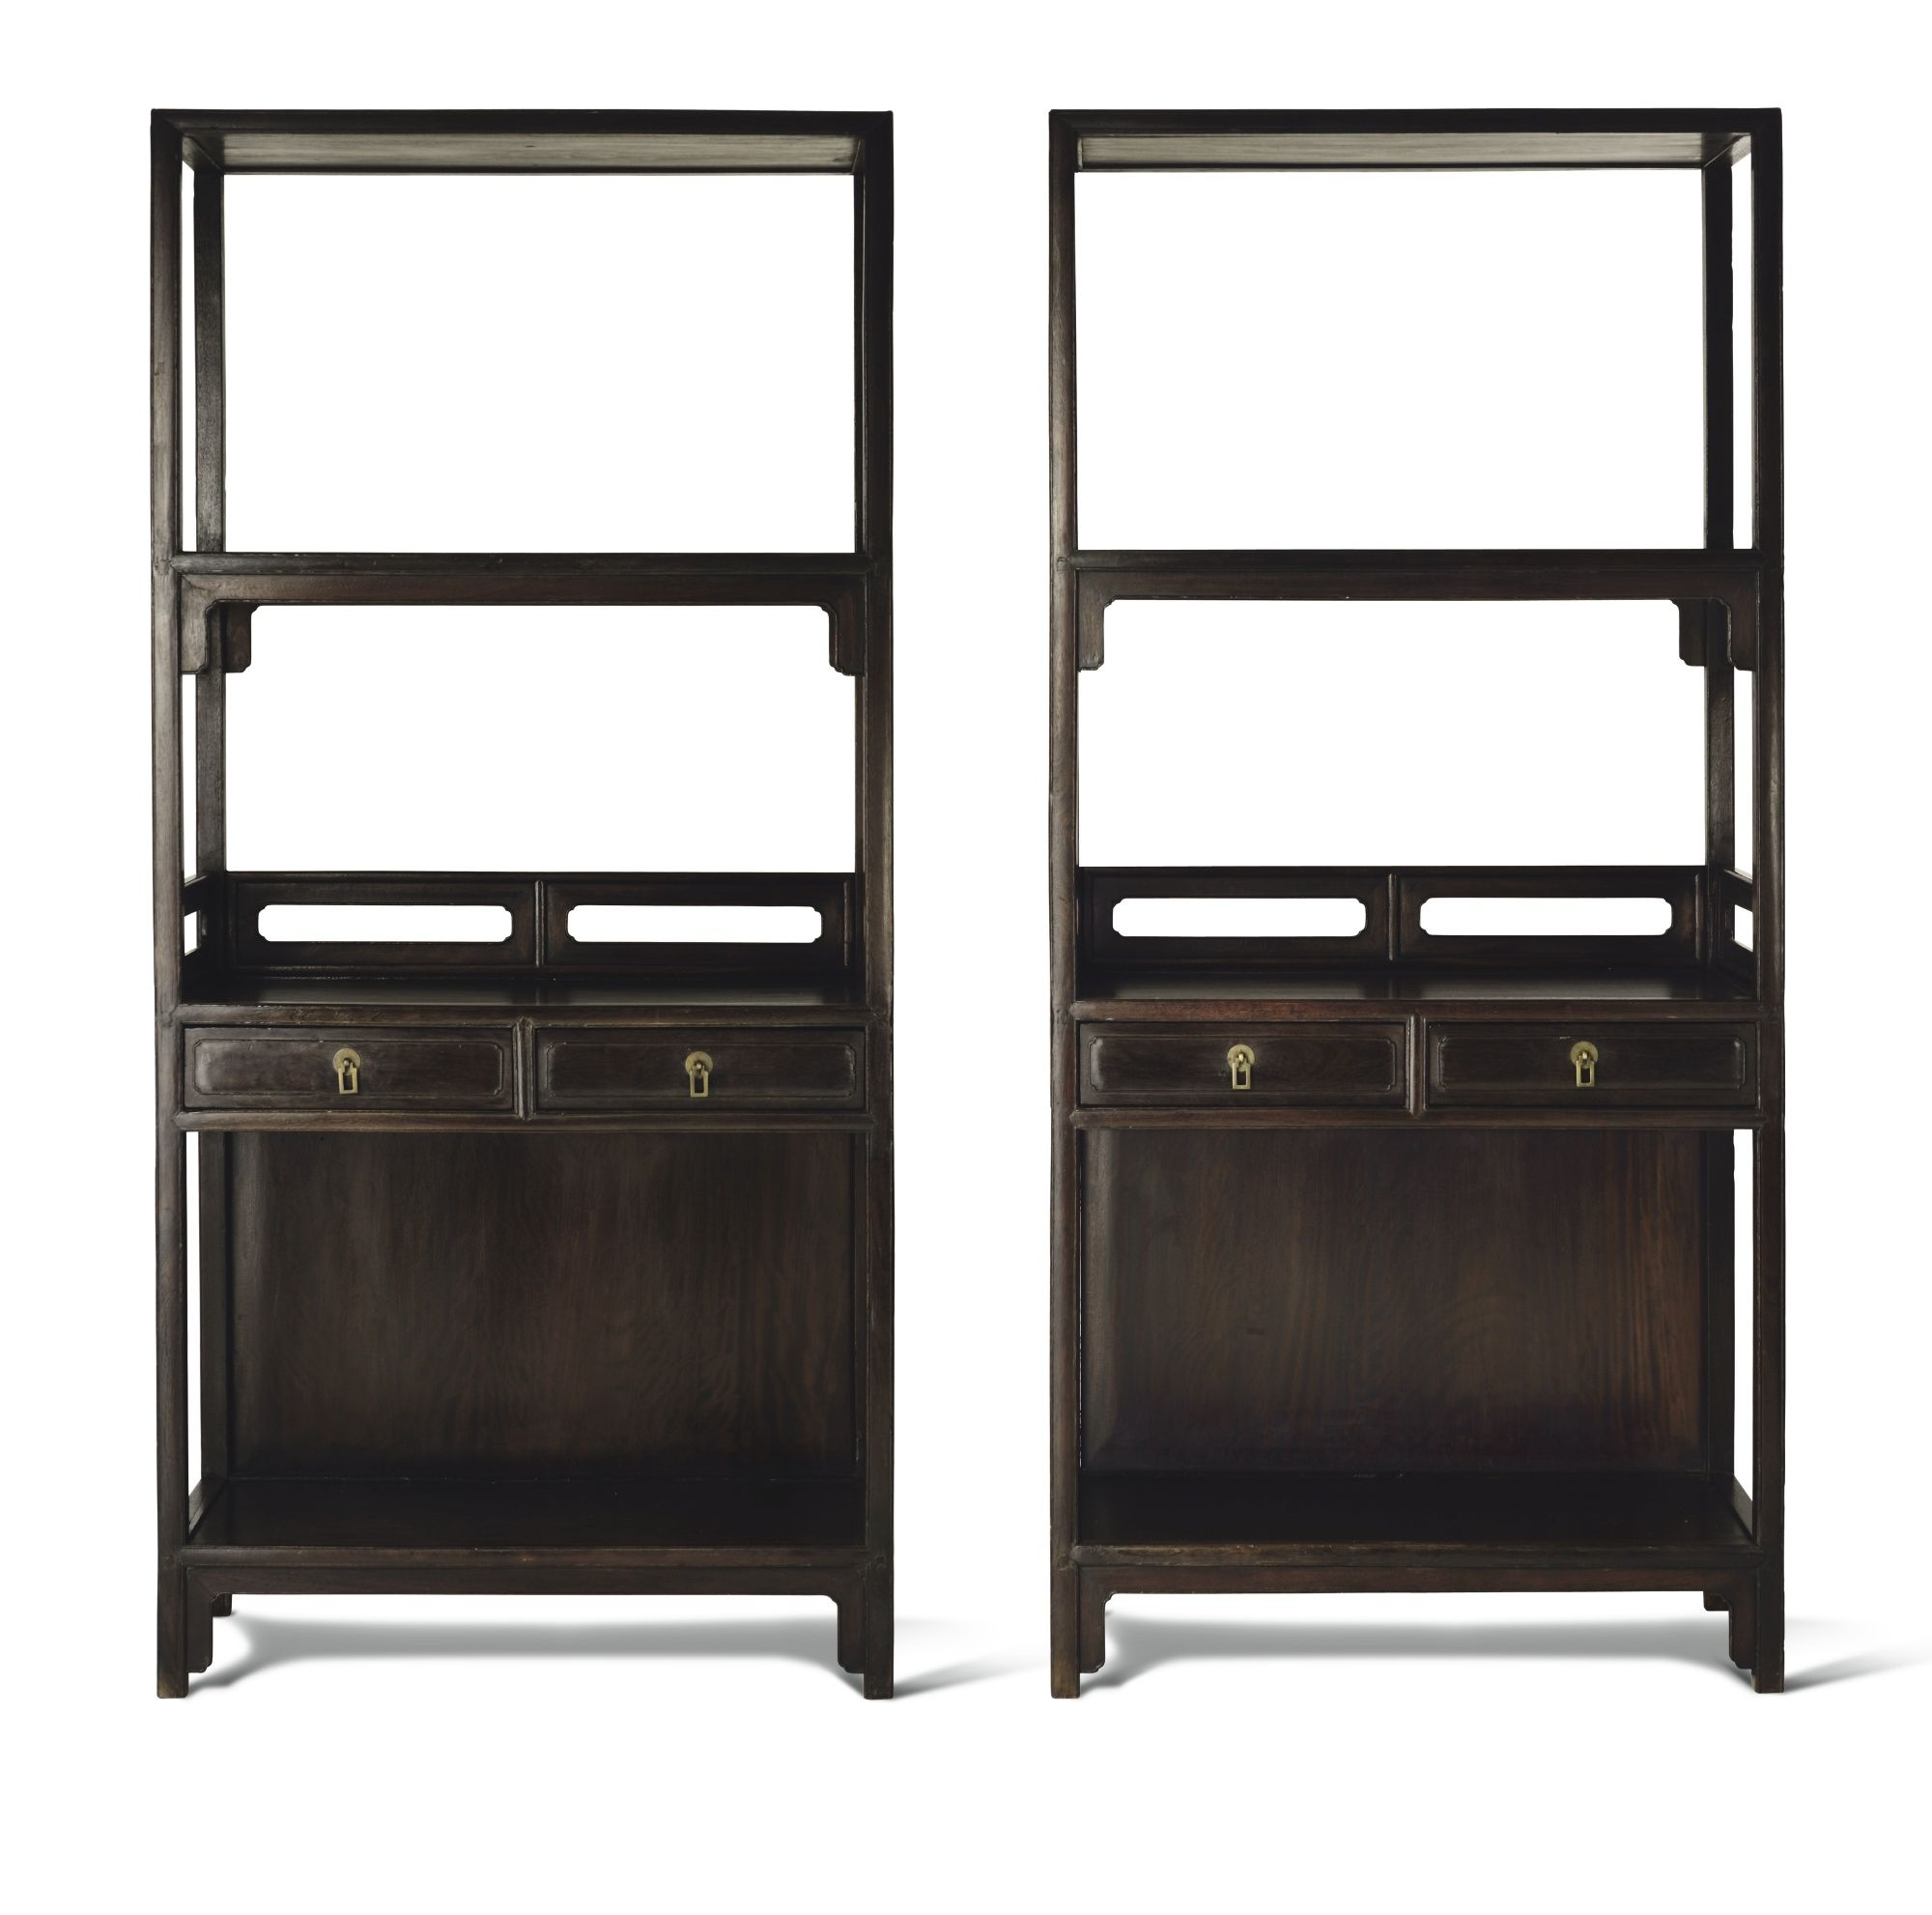 a superb pair of tieli wood bookshelves u003cbr u003e17th century lot rh pinterest com